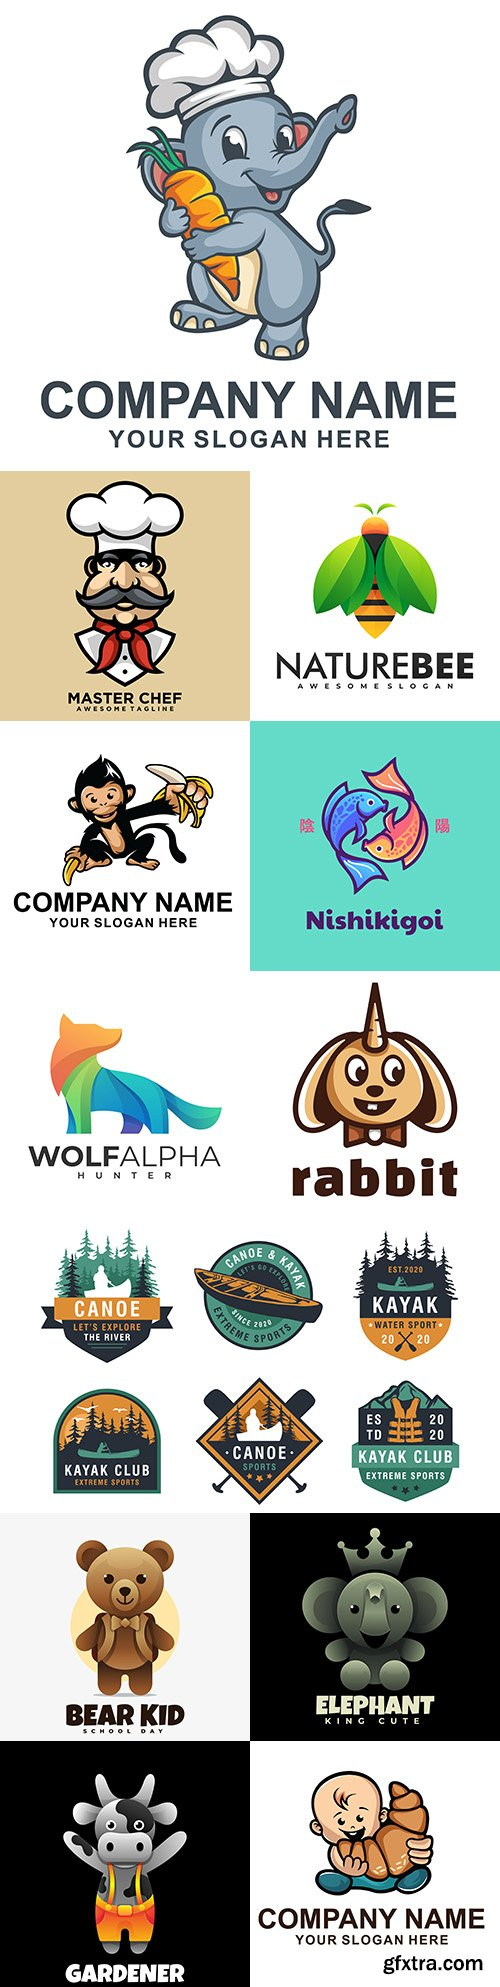 Brand name company business corporate logos design 16